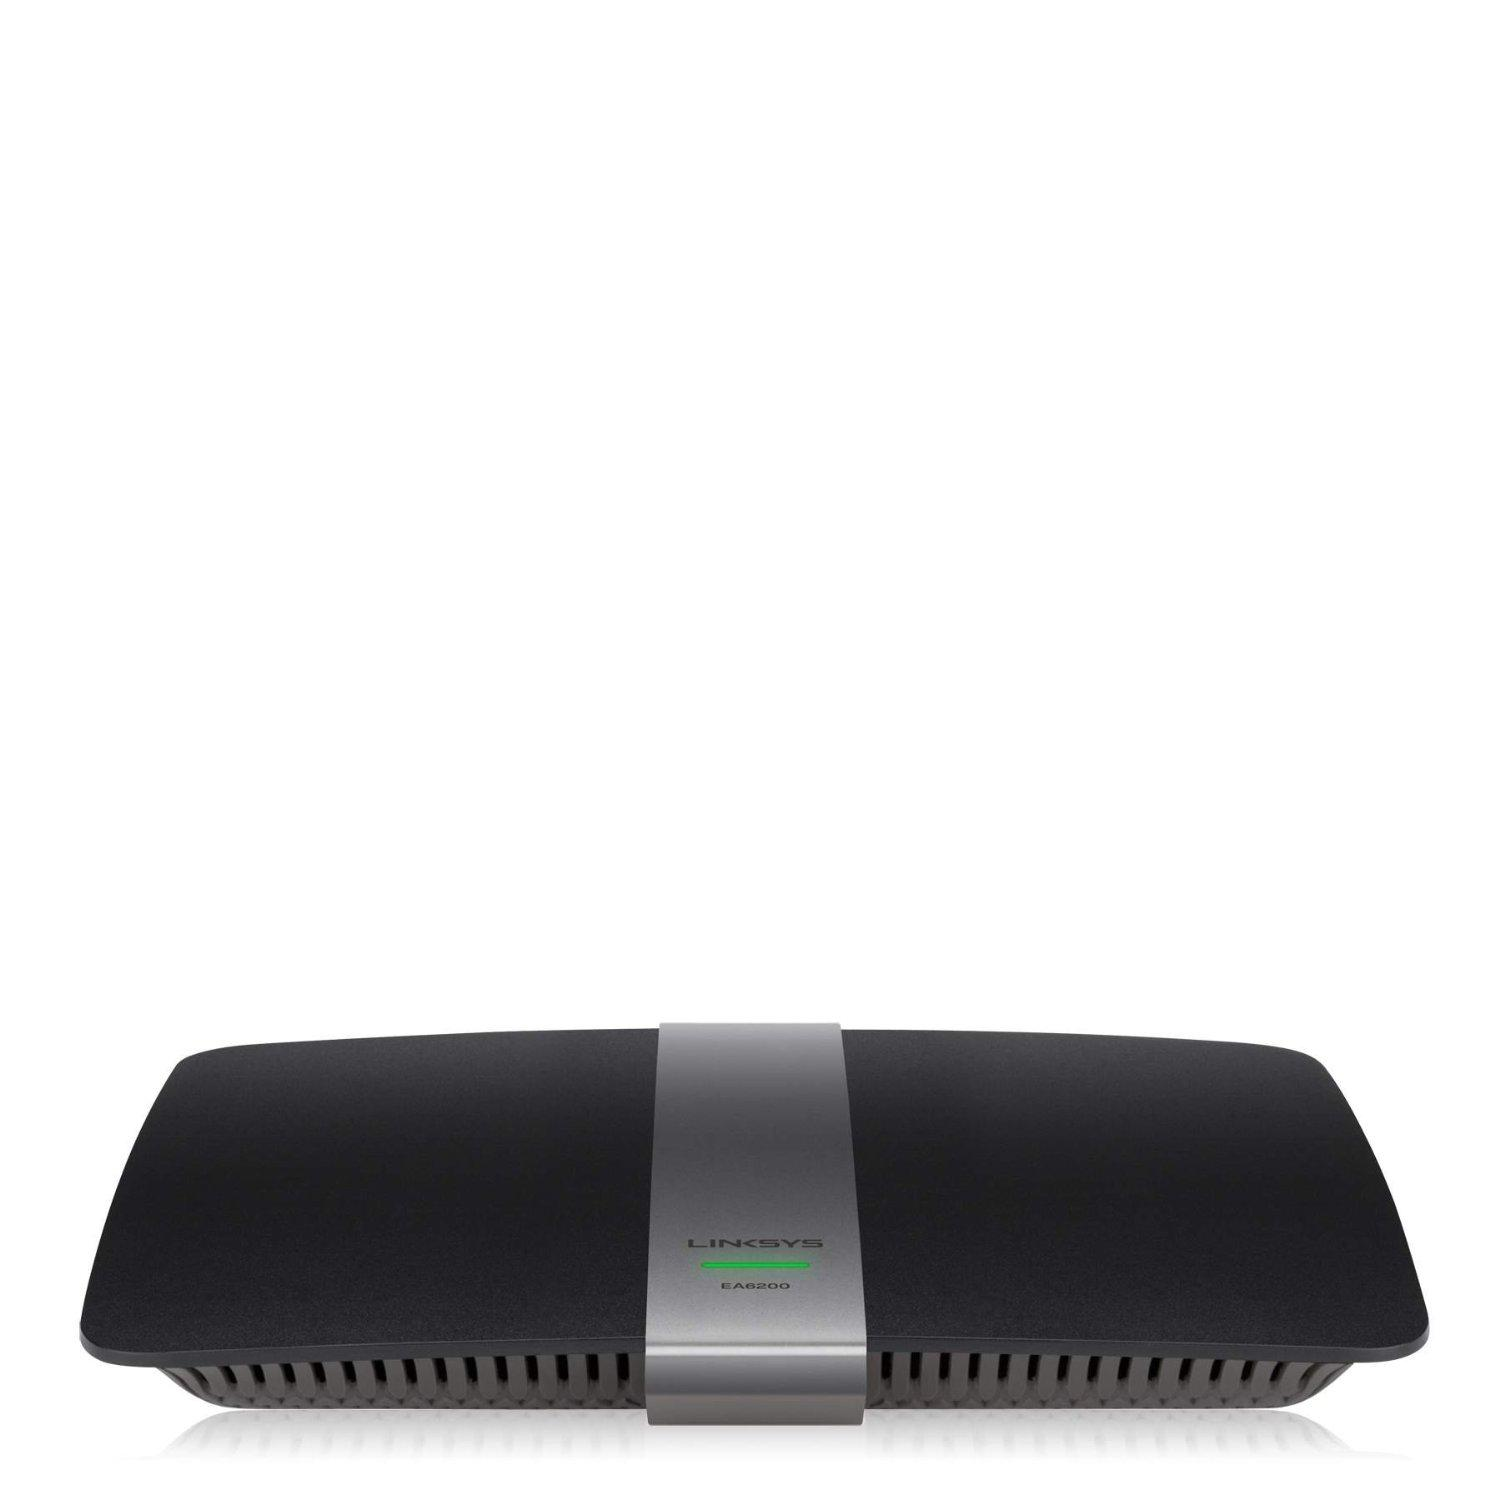 Linksys EA6200-CA Dual Band AC900 Smart Wi-Fi Router IEEE 802.11ac